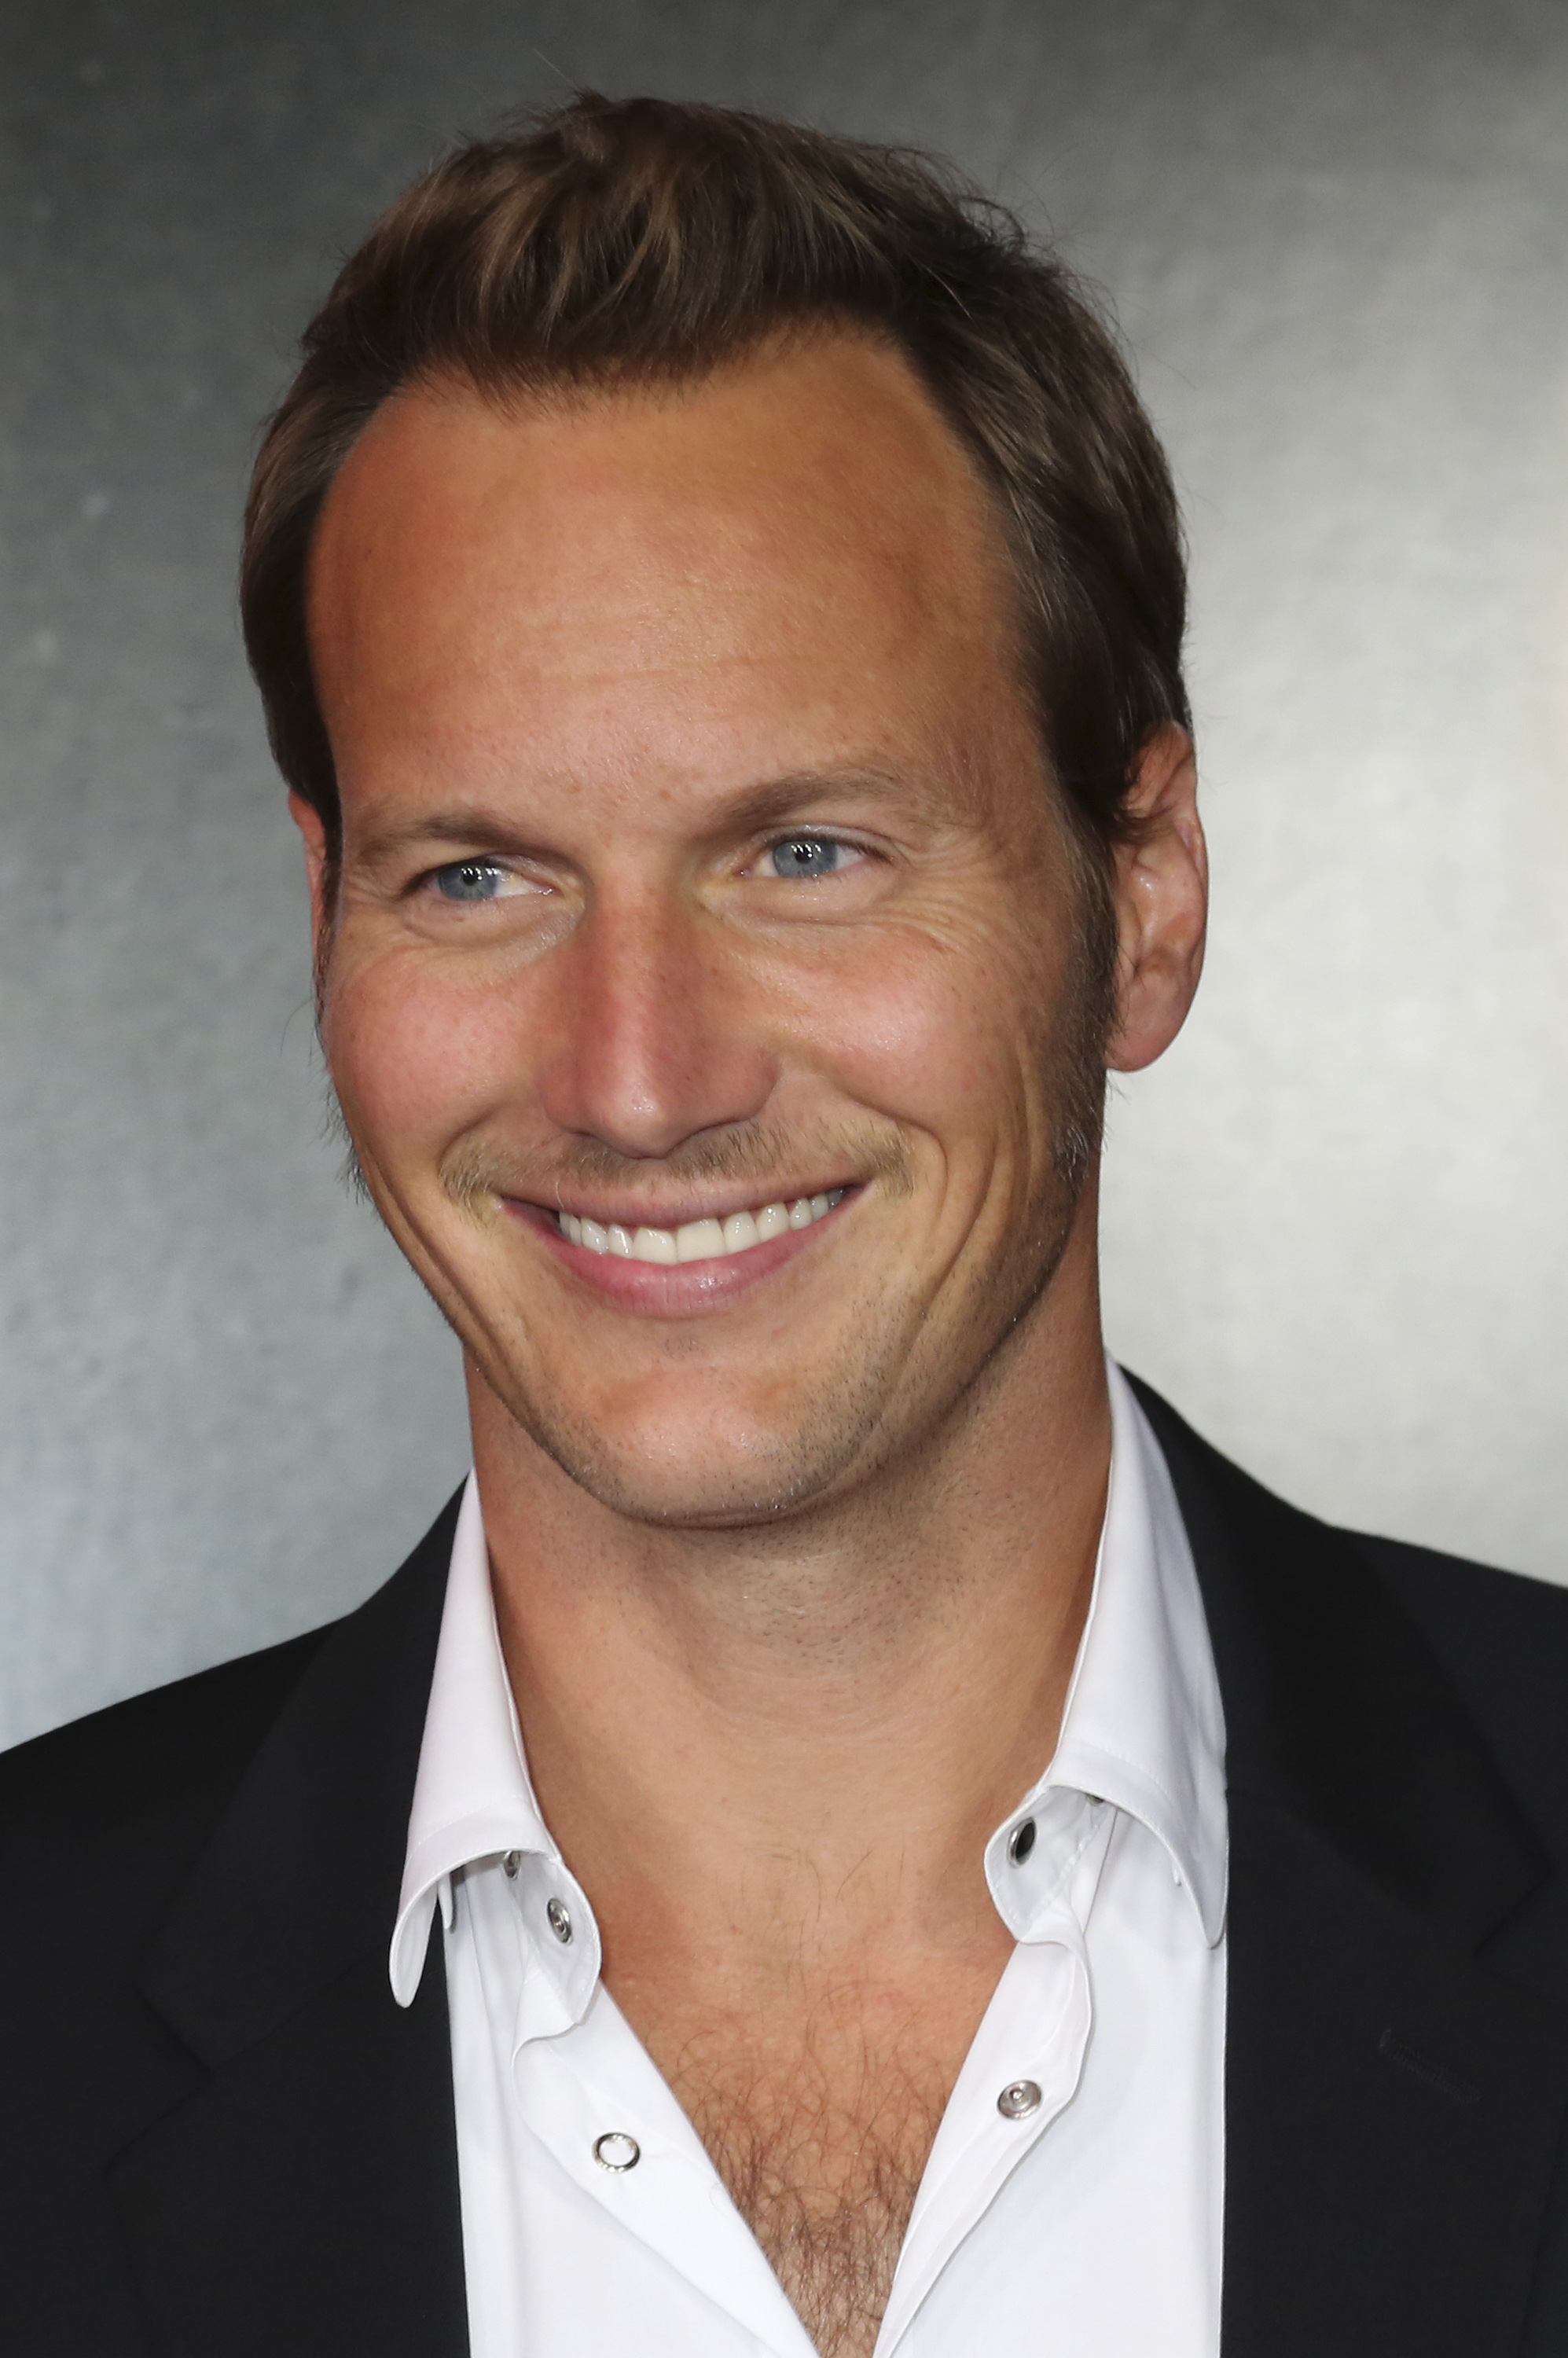 Pictures Of Patrick Wilson American Actor Pictures Of